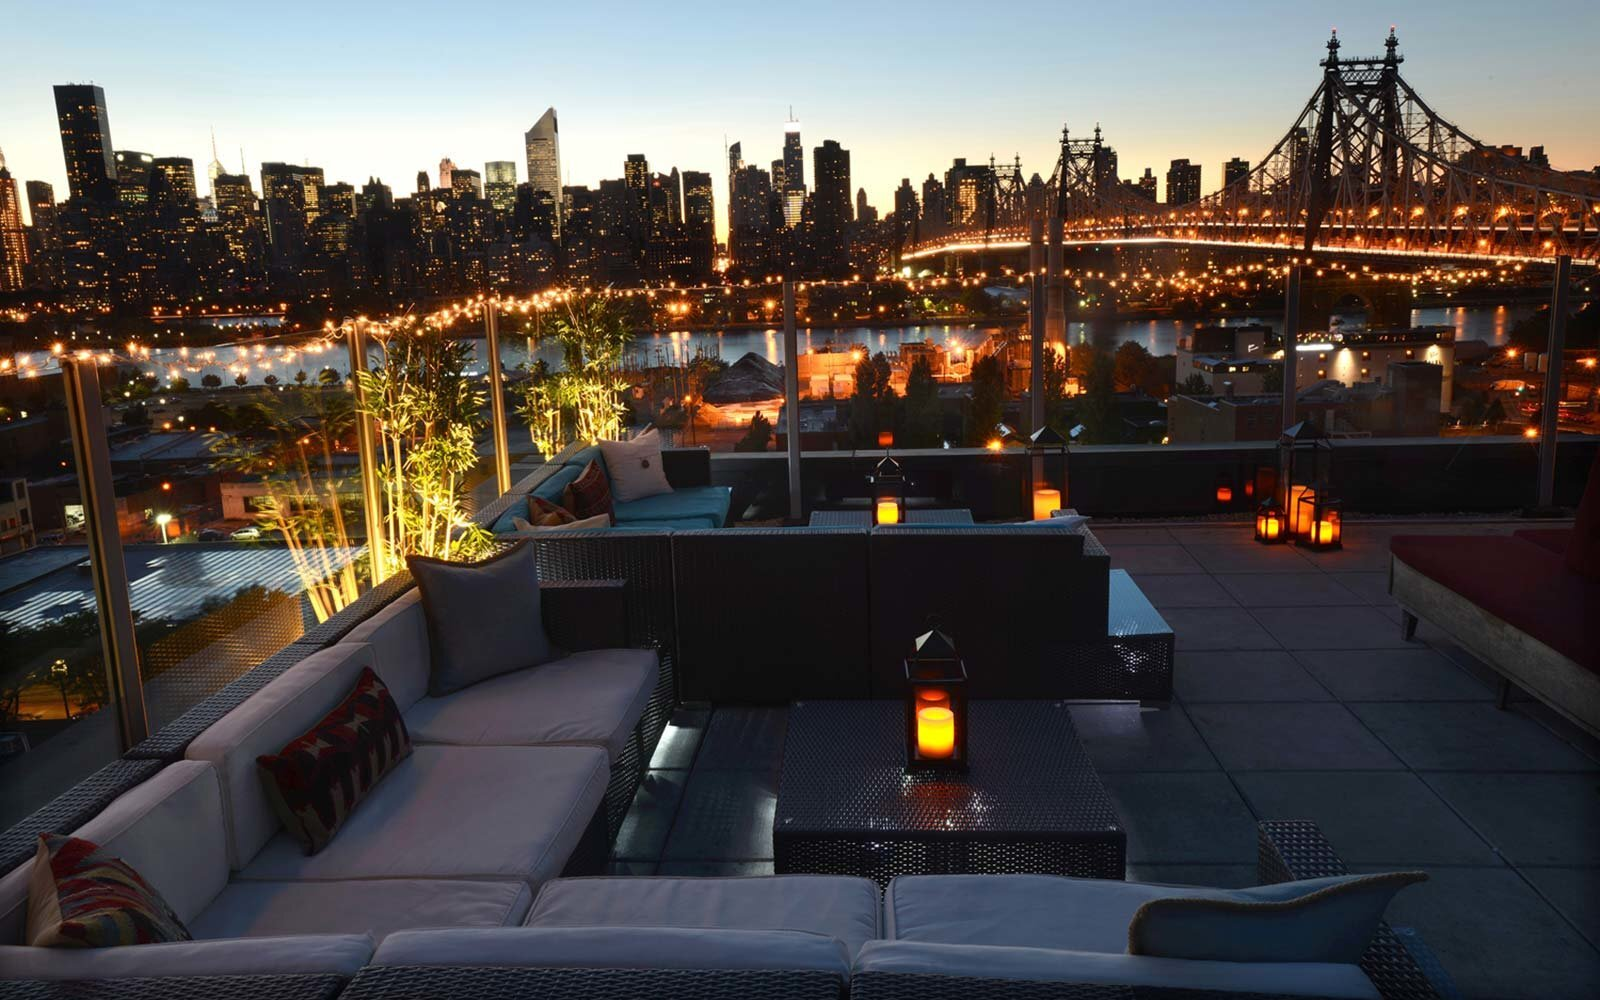 Best Rooftop Bars Nyc 2019 Best Rooftop Bars in NYC | Travel + Leisure